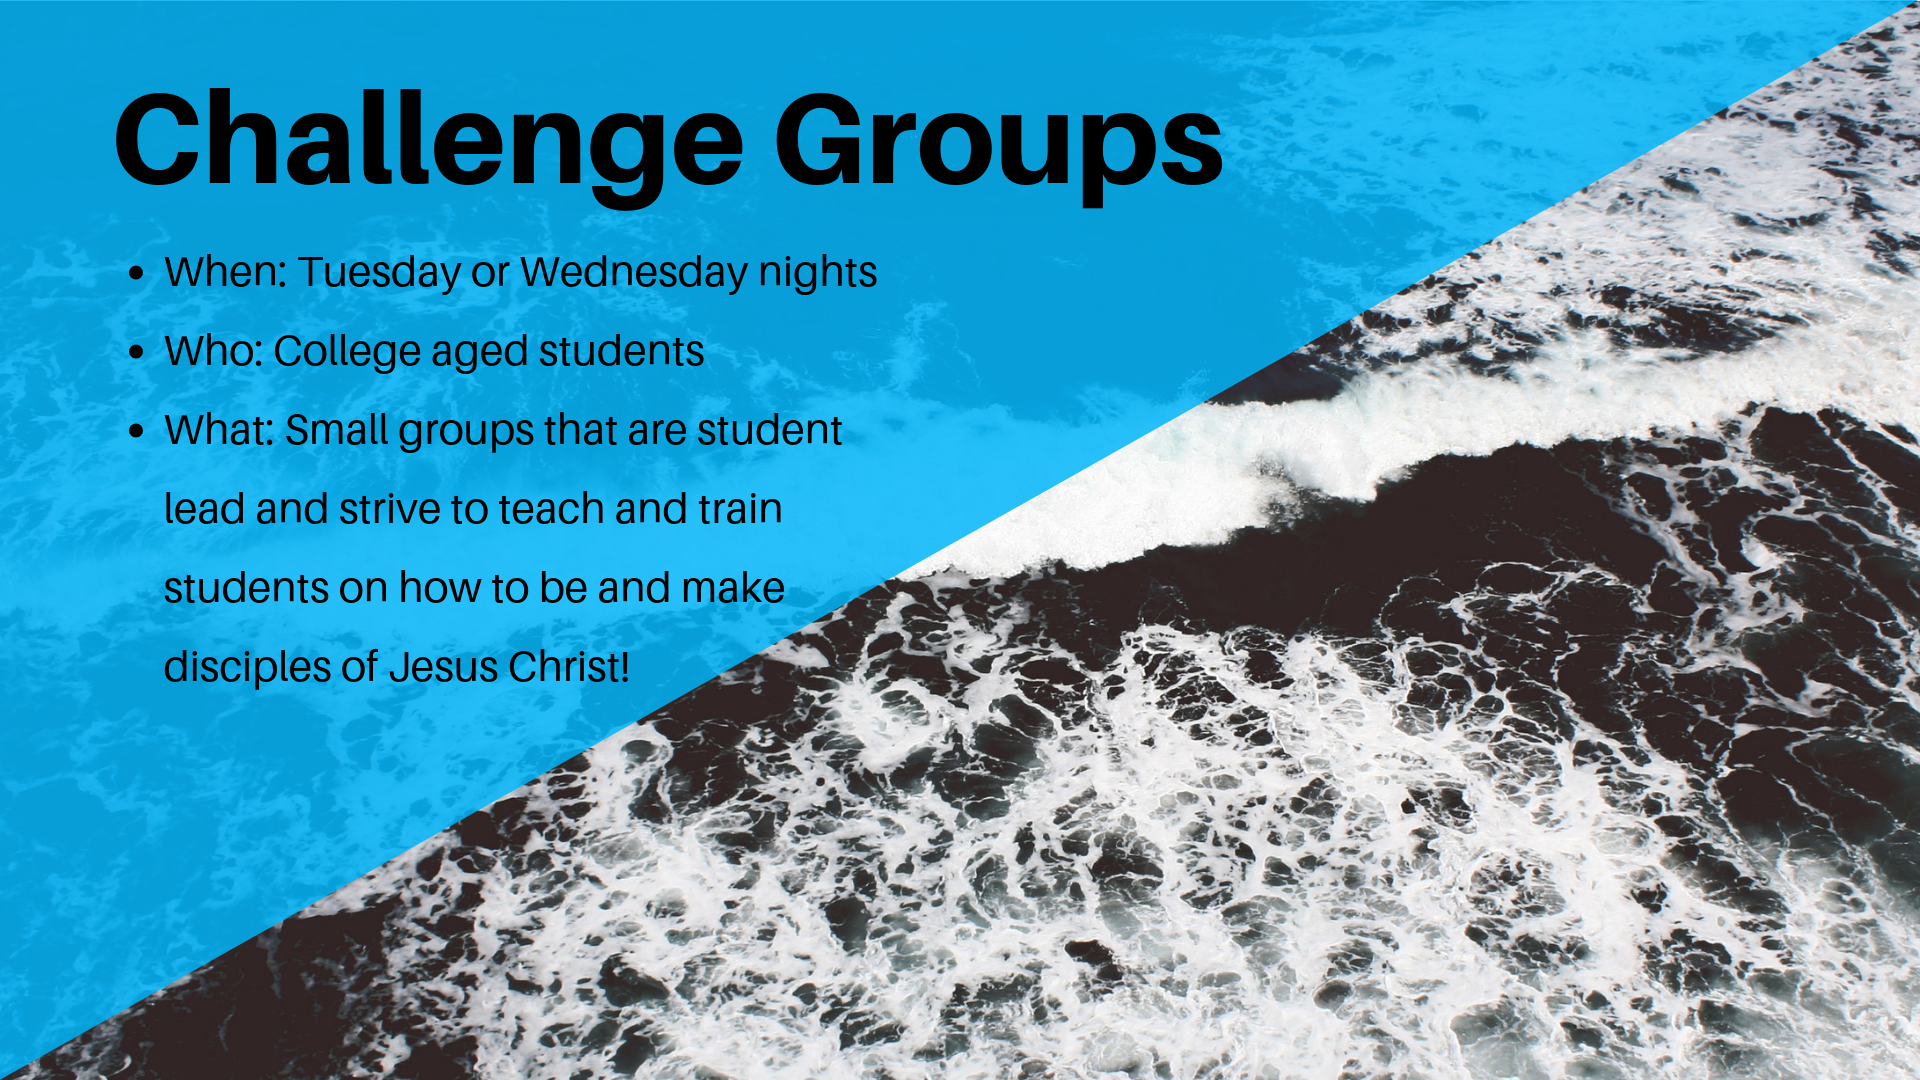 Challenge Groups | Tuesday & Wednesday Nights   Wanna grow deeper in your faith? Join one of our 14 student lead small groups that seek to grow in your faith by teaching and training one another to be disciples who make disciples of Christ!